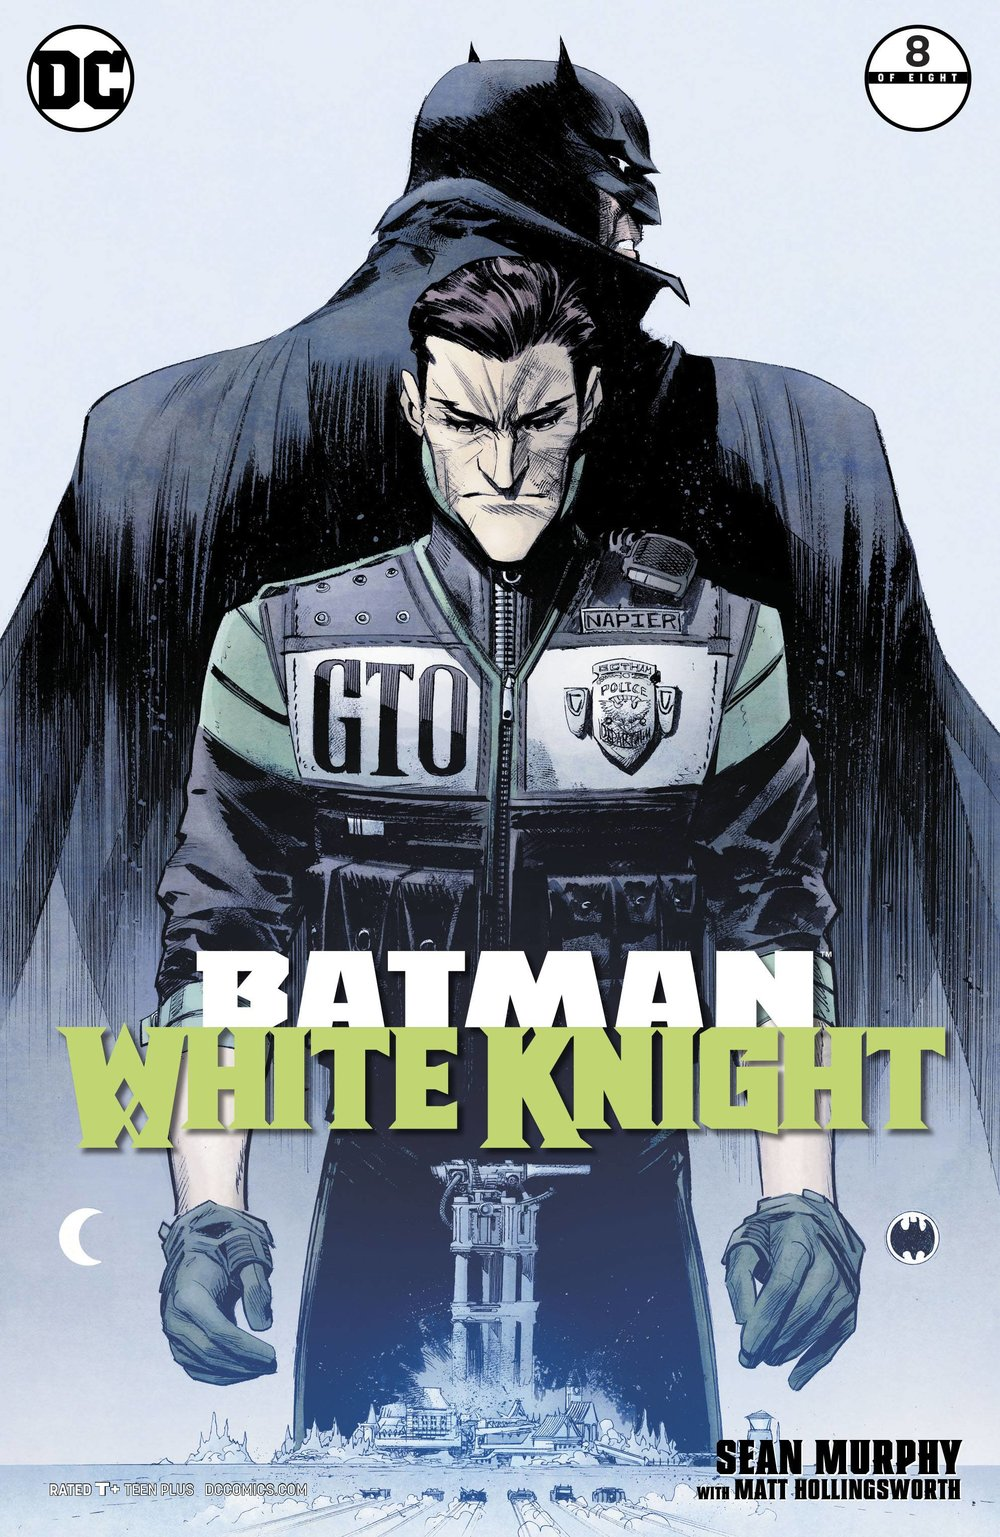 BATMAN WHITE KNIGHT 8 of 8.jpg